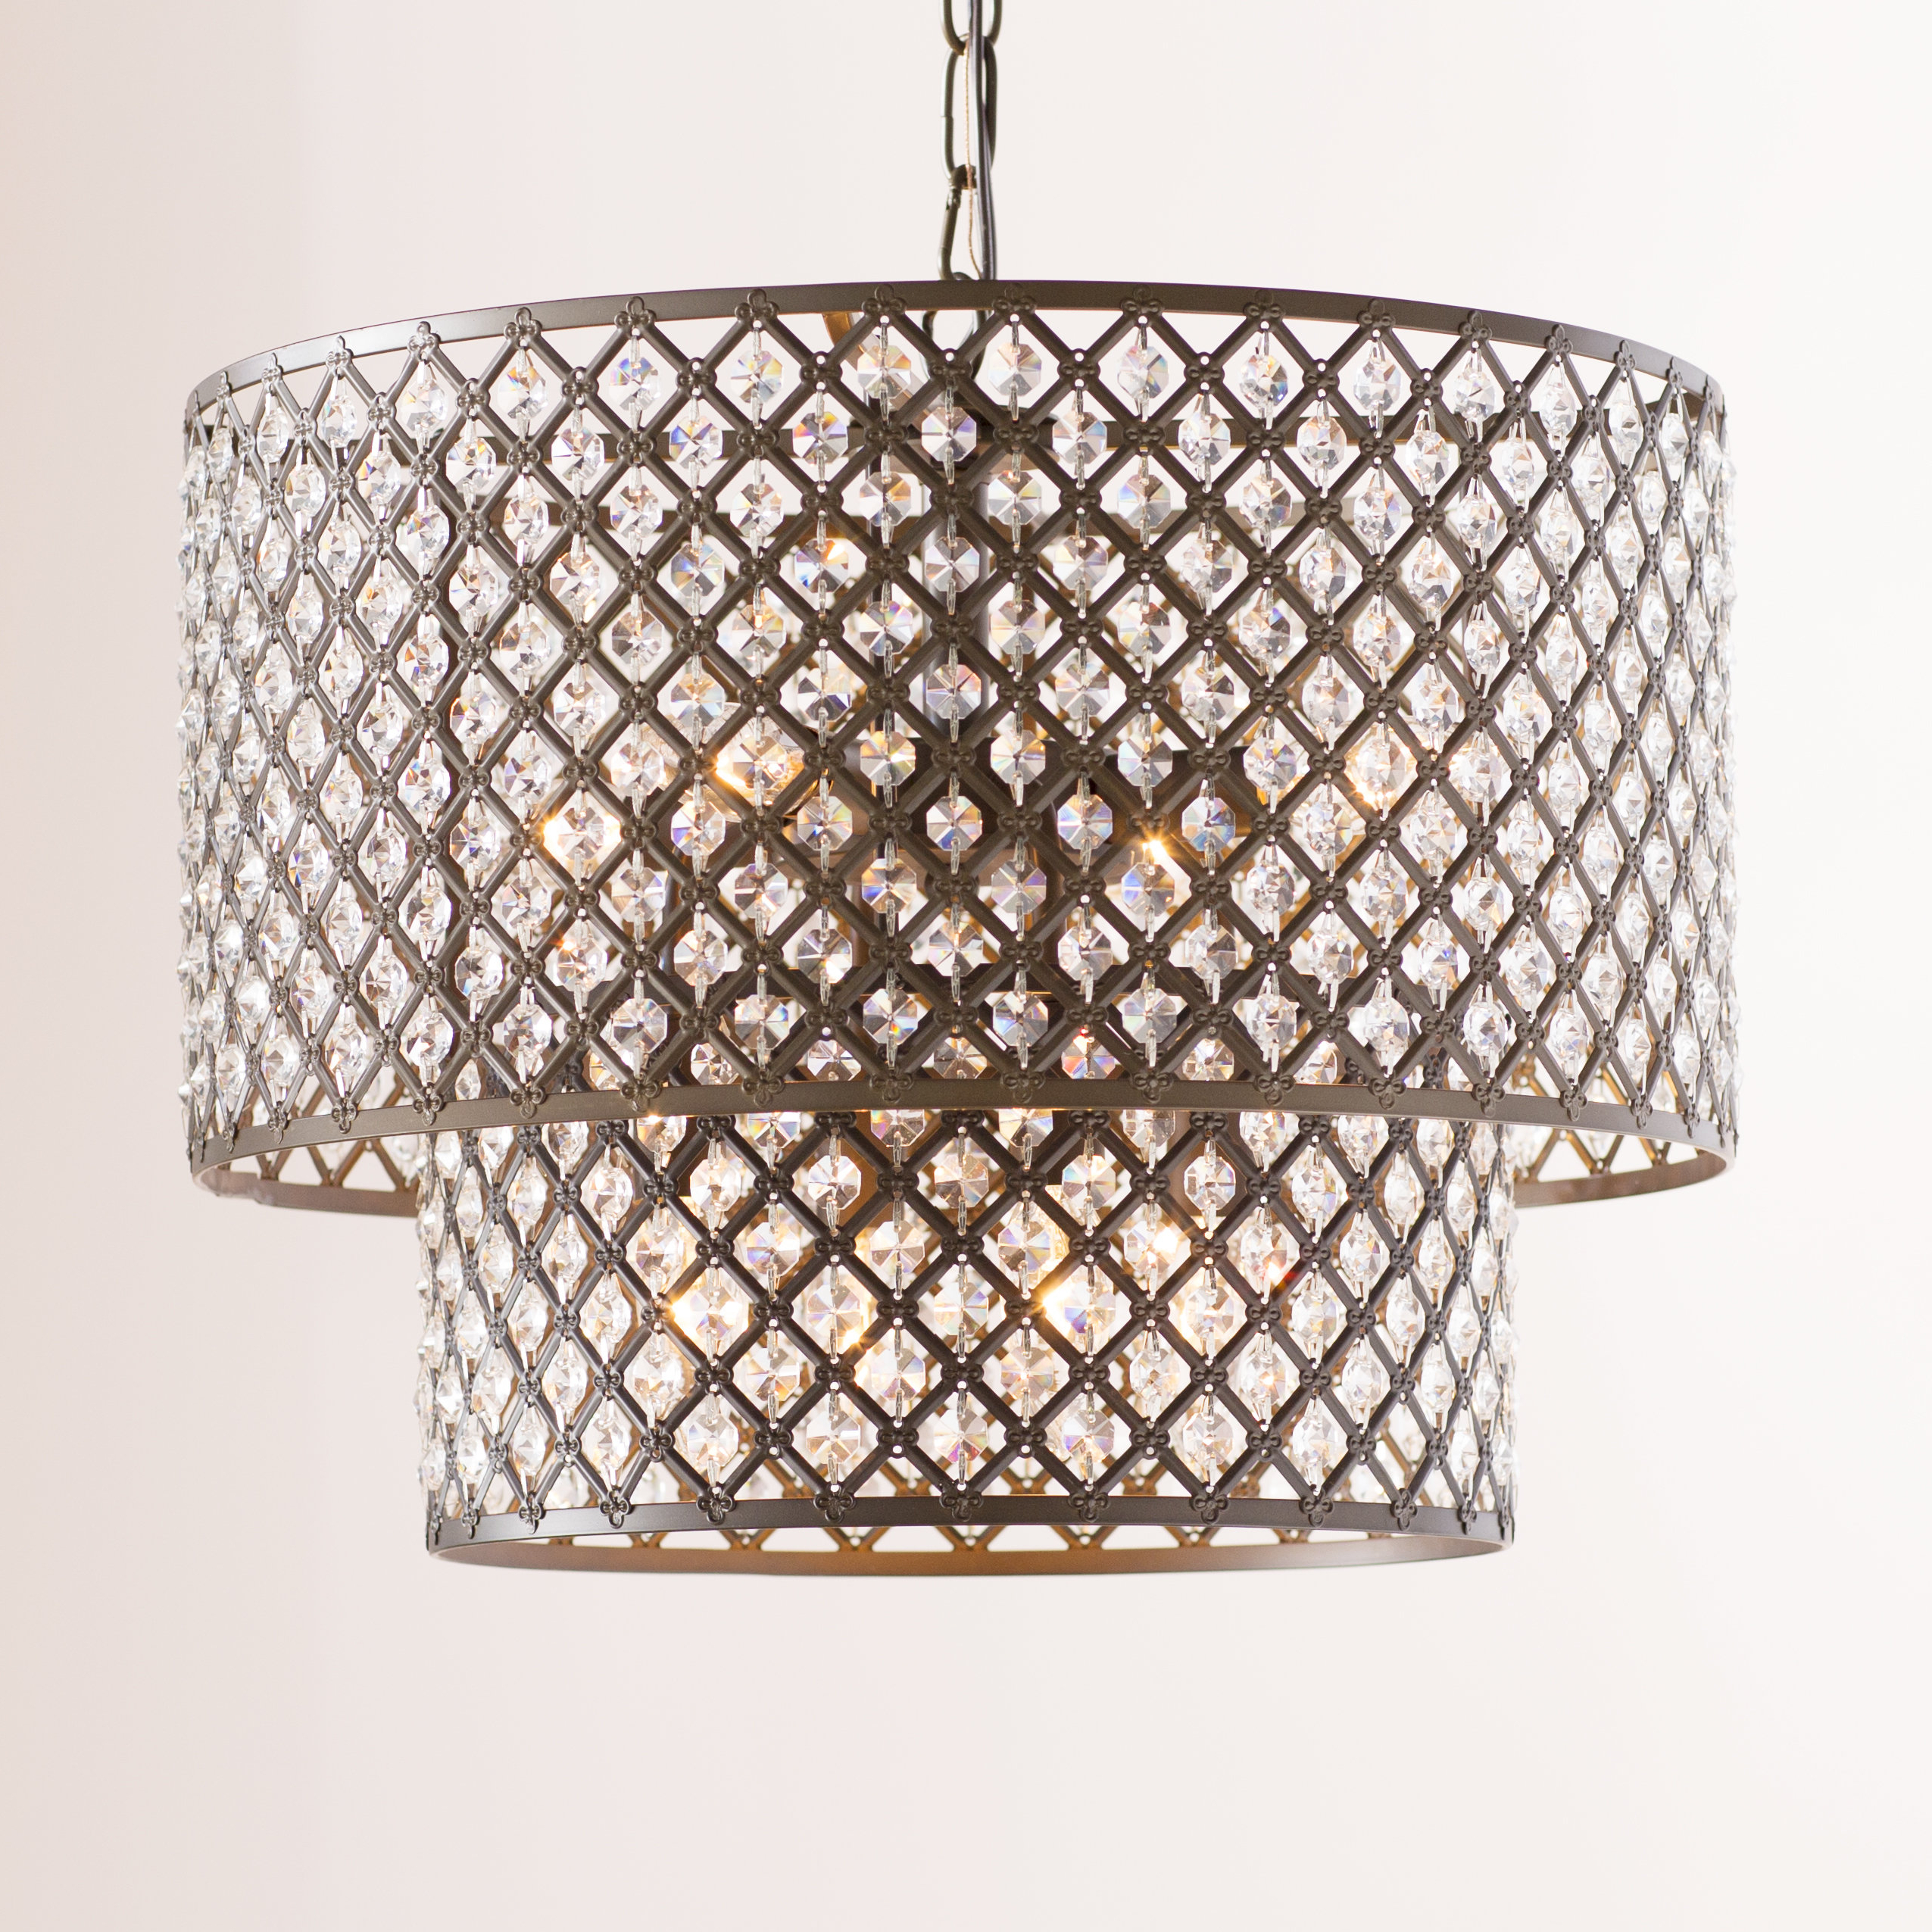 Best And Newest Maribel 8 Light Drum Chandelier Intended For Gisselle 4 Light Drum Chandeliers (View 4 of 25)